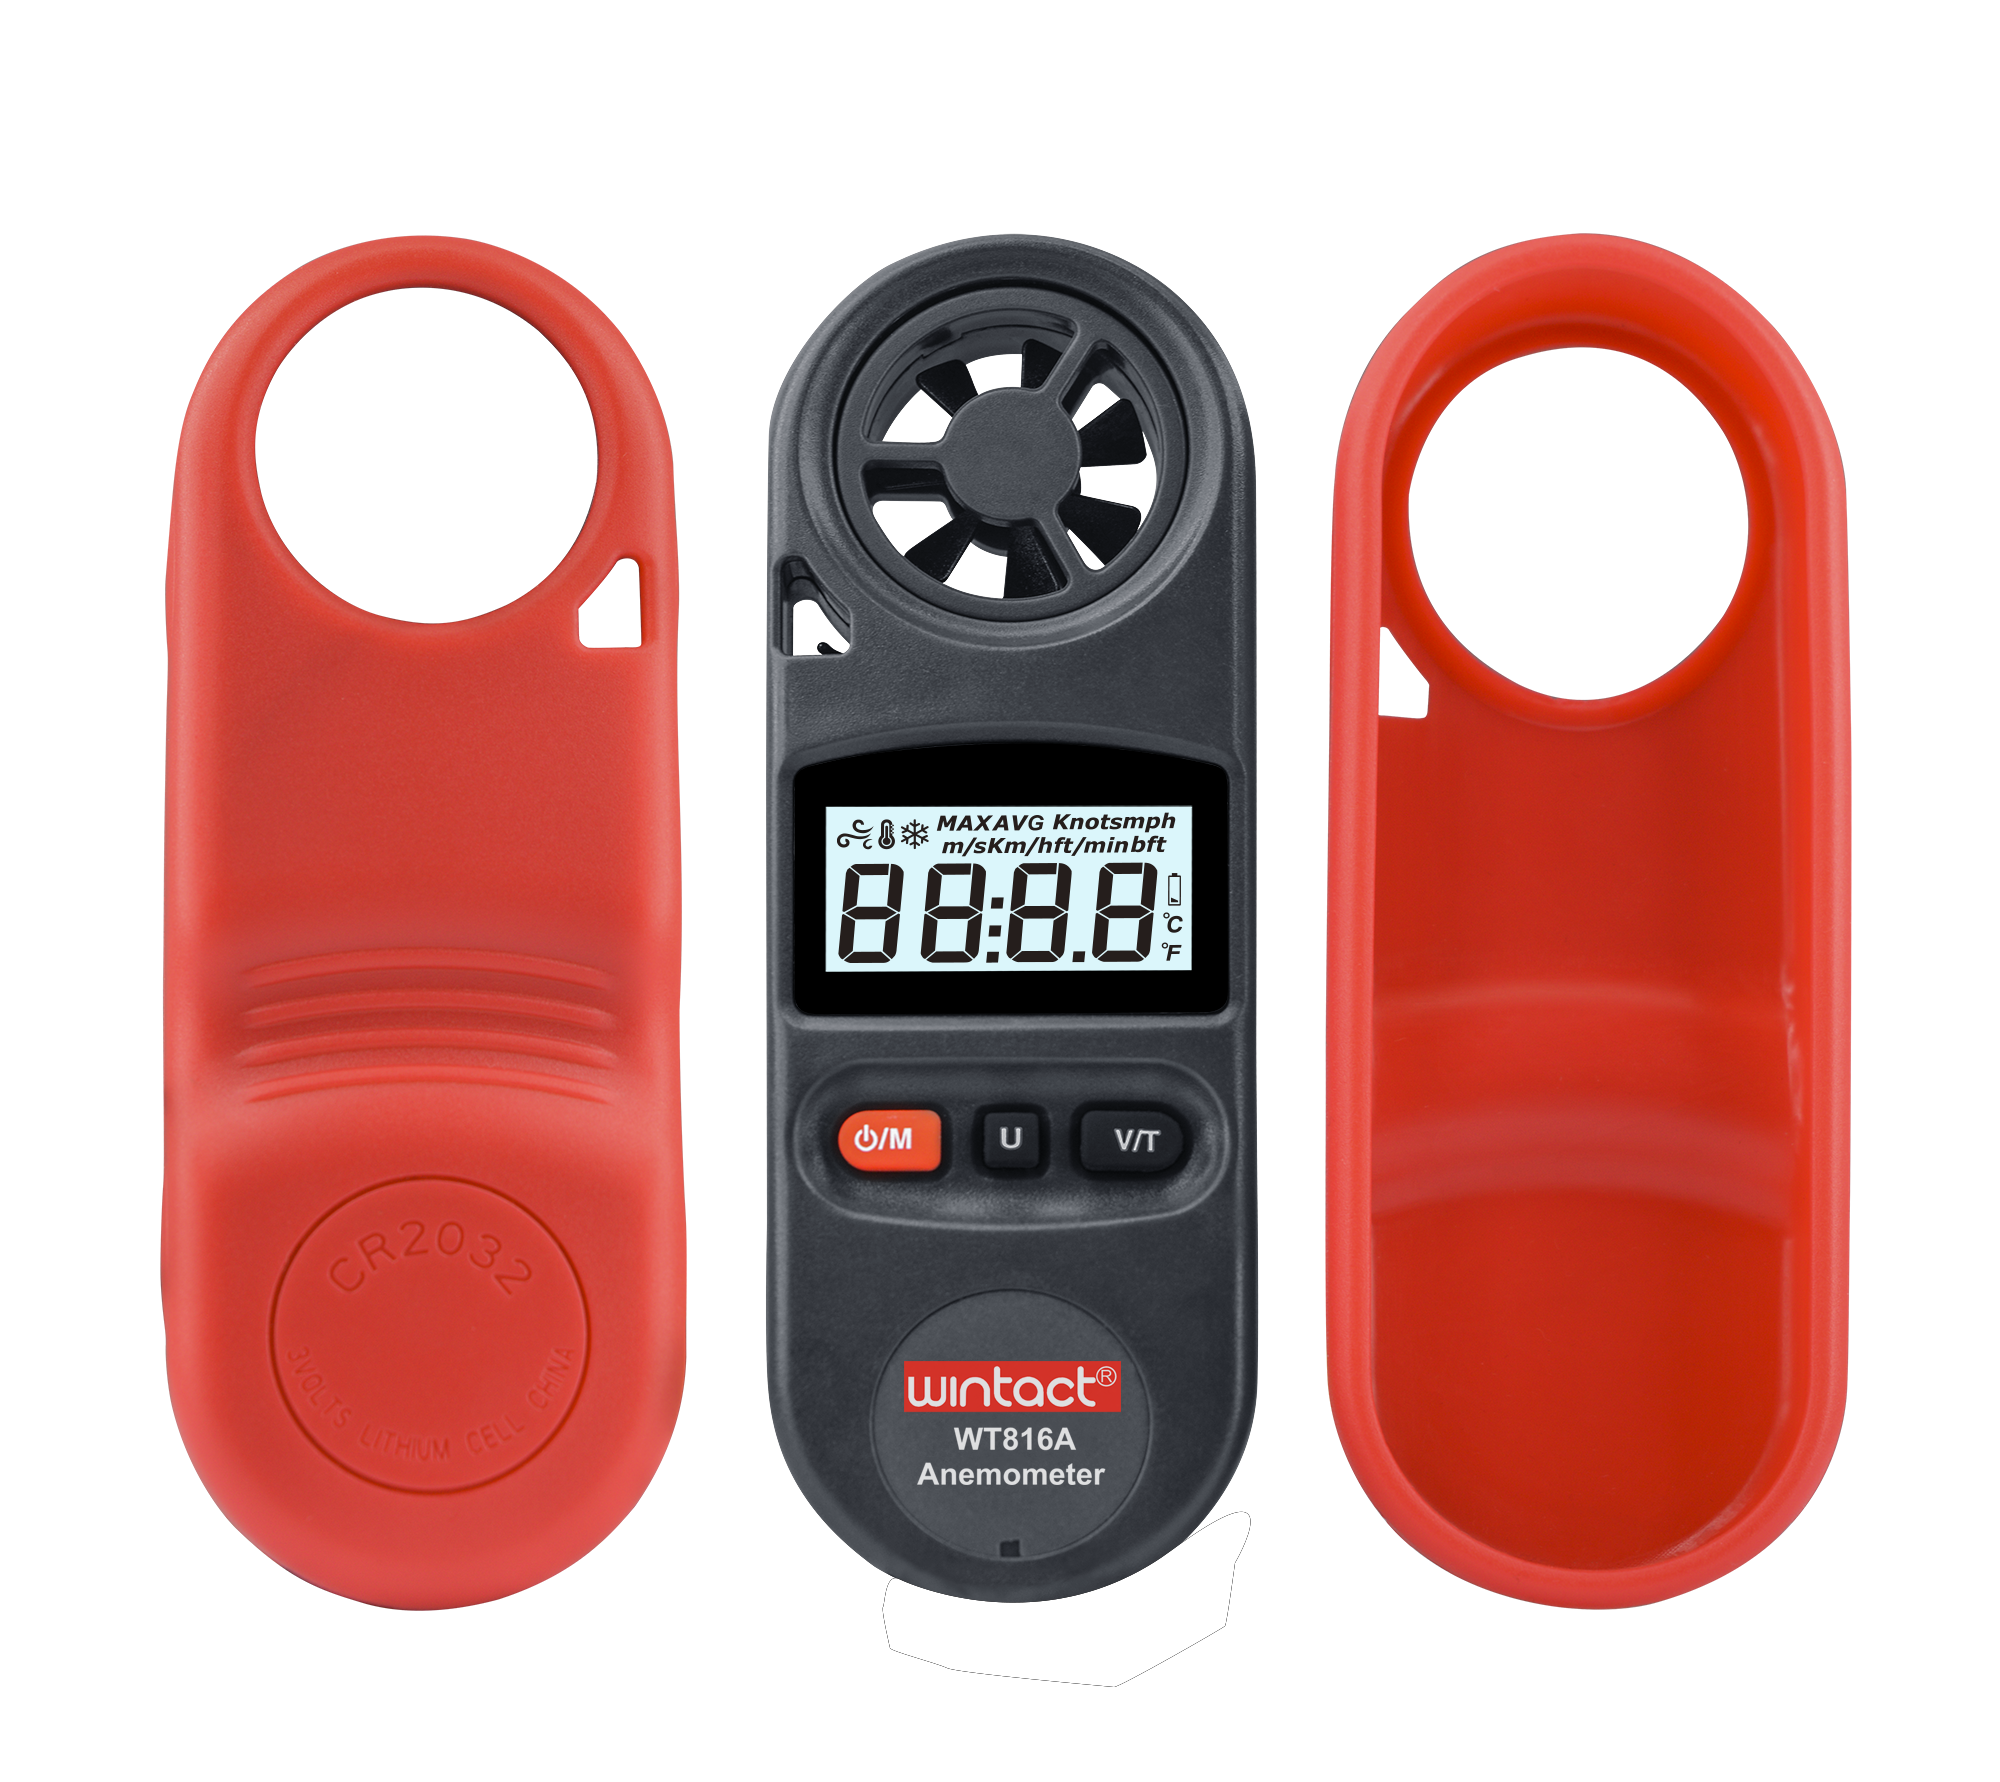 Portable RZ GM816 Wind Speed Meter Used as Anemometer with LCD Display Useful for Windsurfing 22